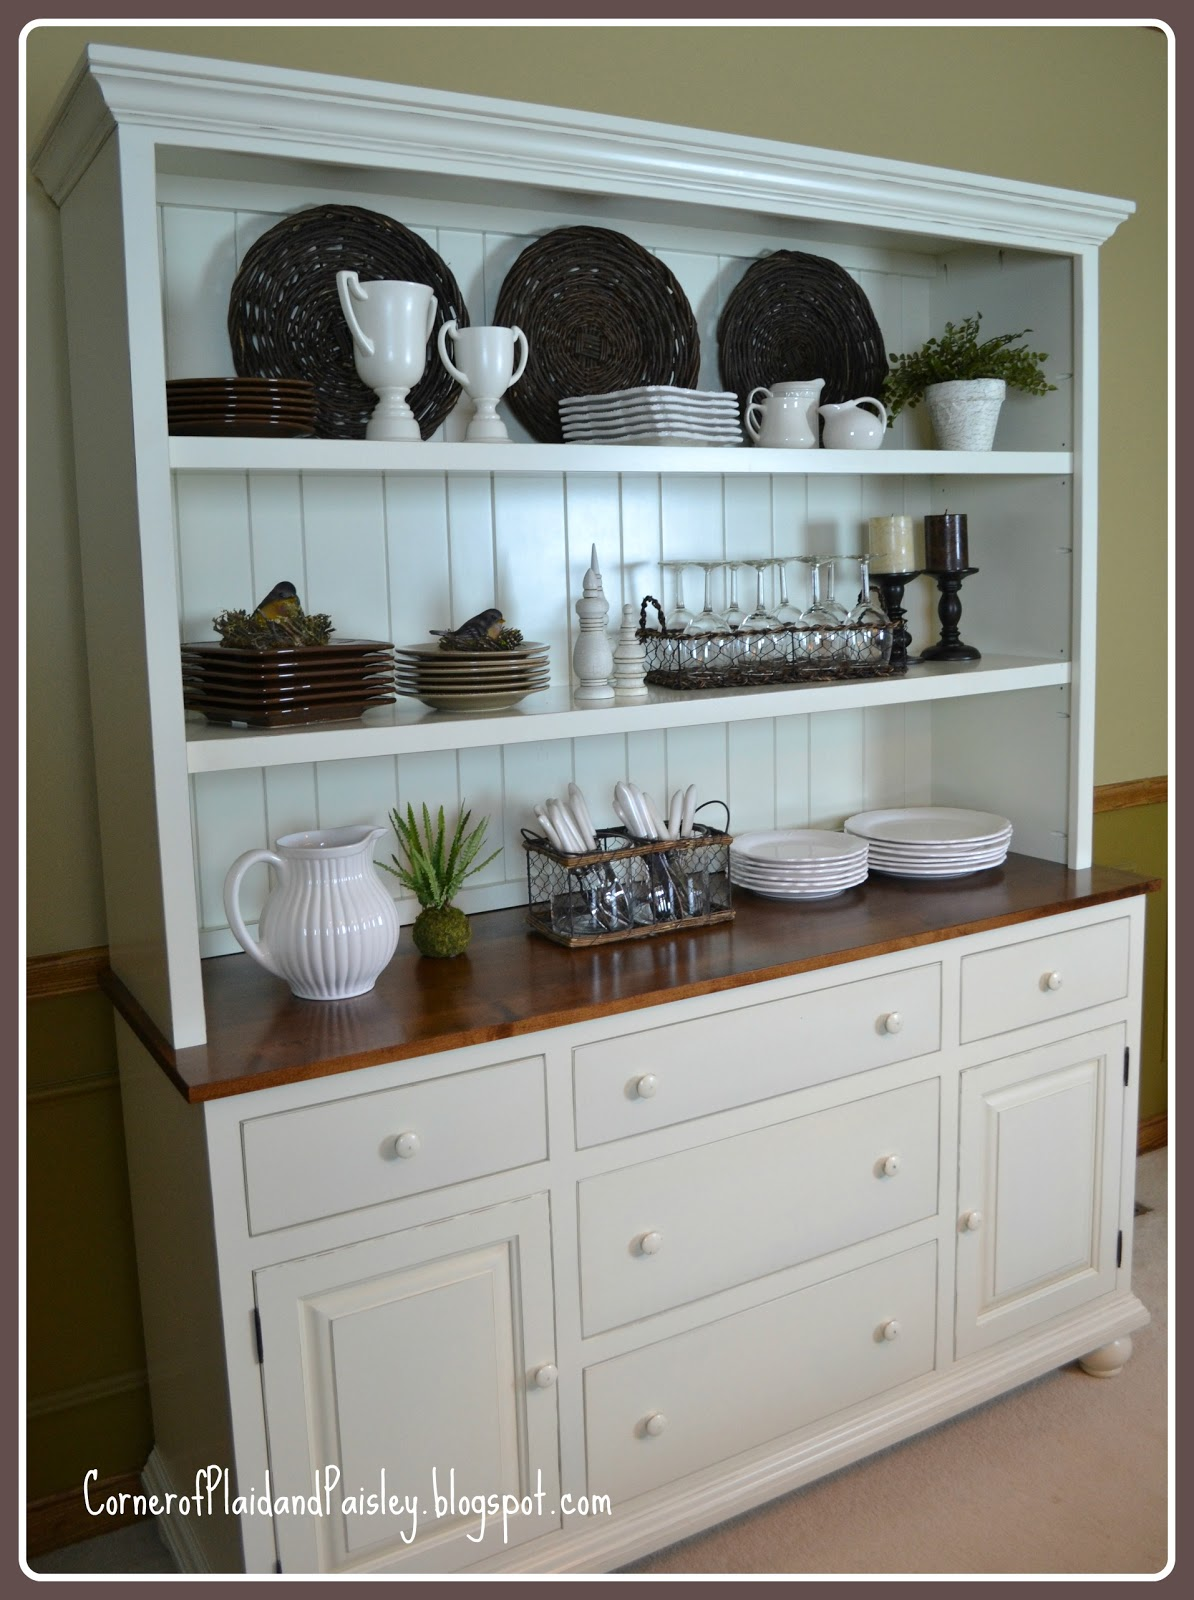 Great Better Than a New Car - New Dining Room Hutch 1194 x 1600 · 248 kB · jpeg